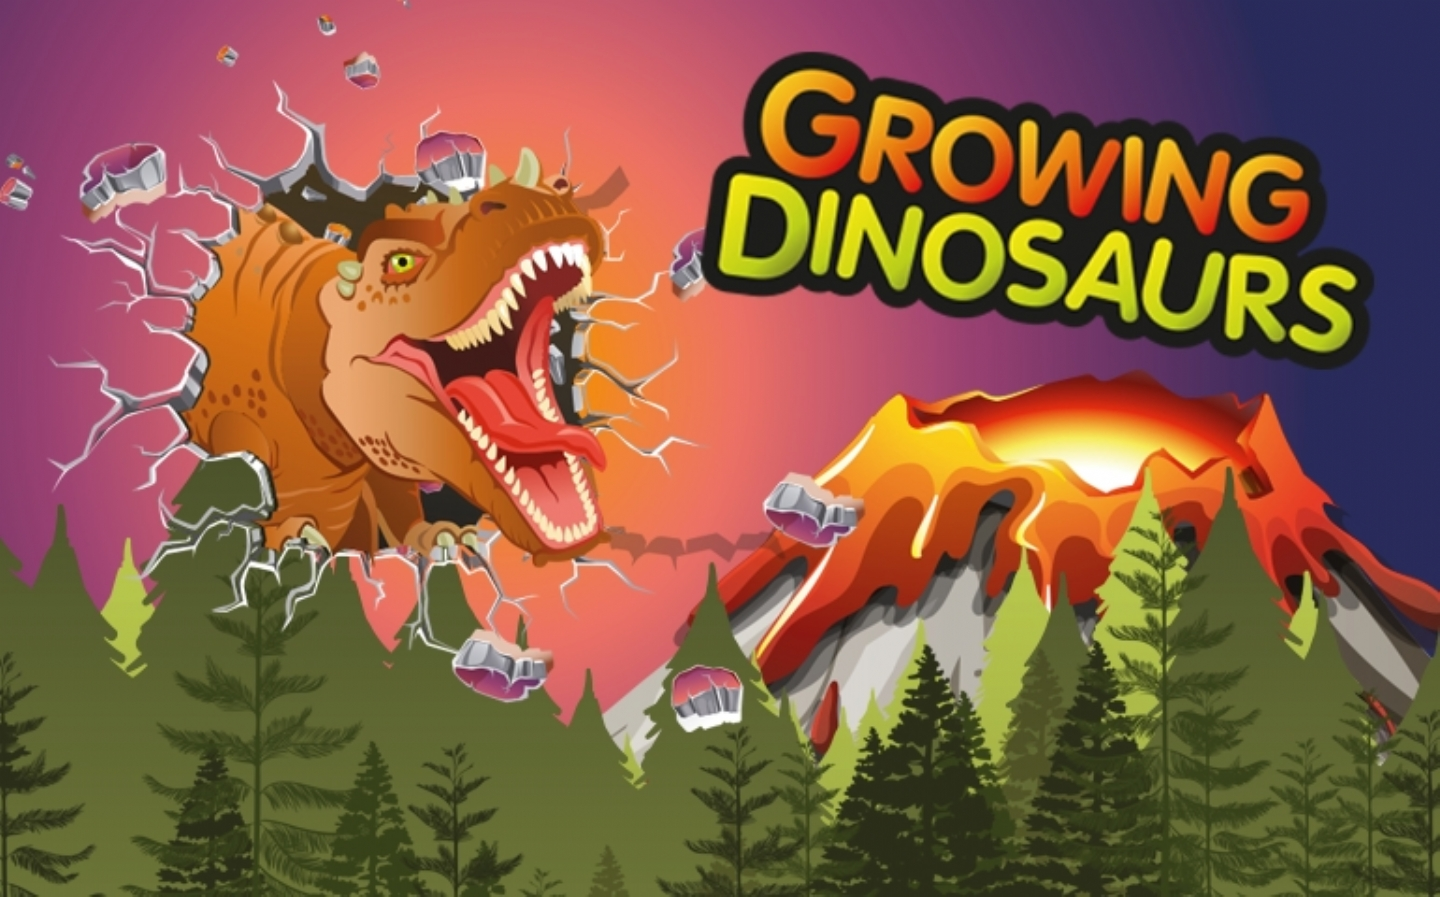 Fabulously ferocious growing dinosaurs by Keycraft